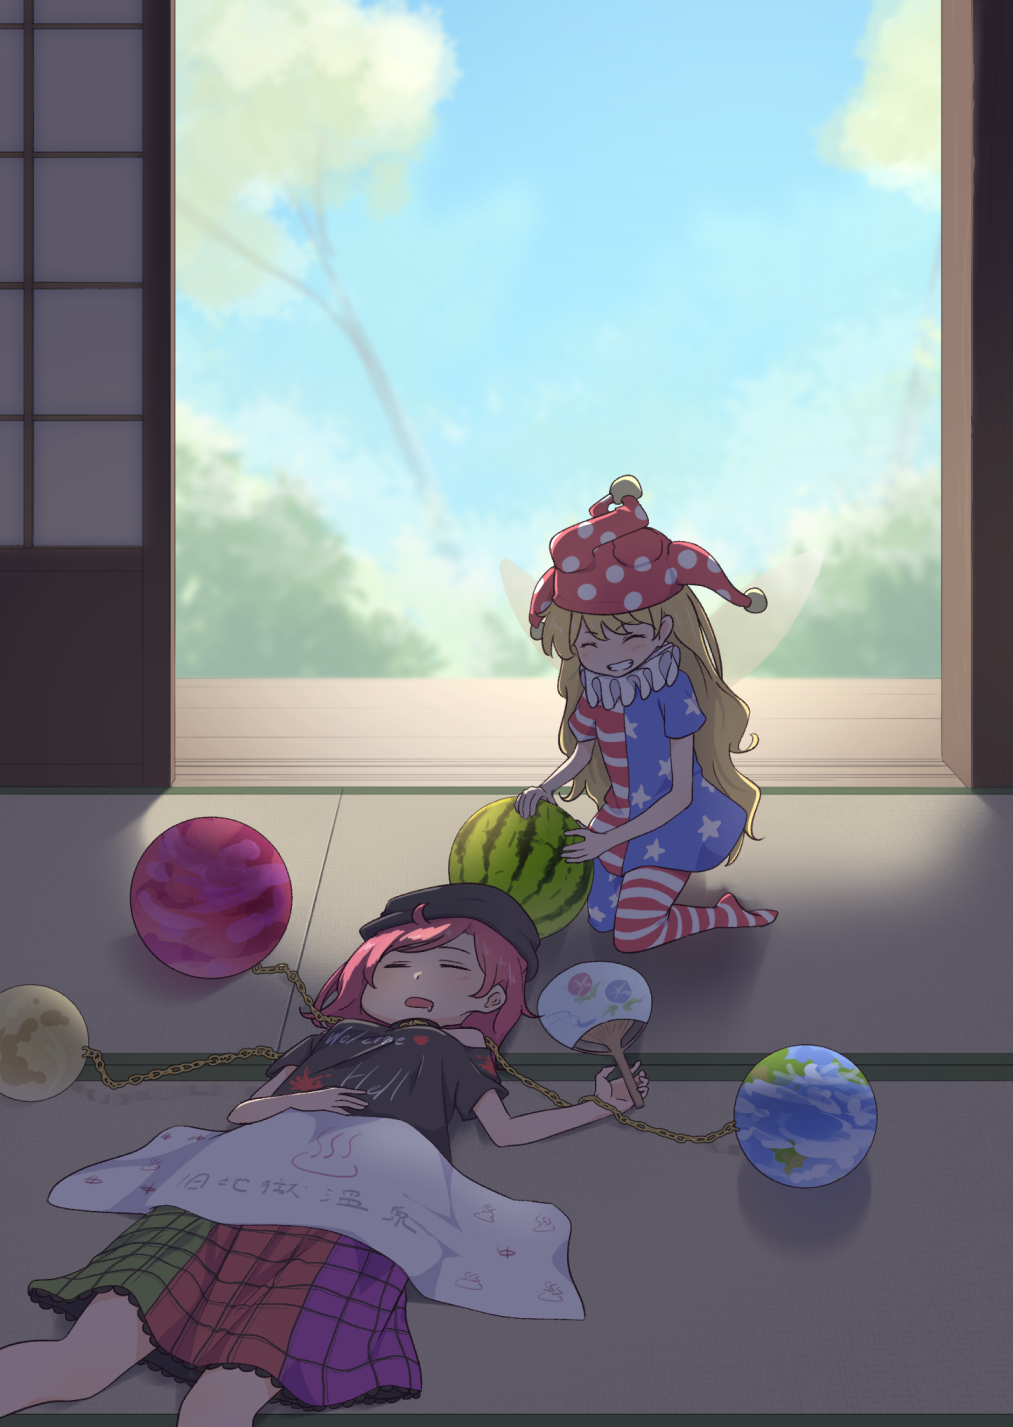 2girls american_flag_legwear american_flag_shirt blonde_hair blue_sky blurry chain closed_eyes clothes_writing clouds clownpiece day depth_of_field drooling earth_(ornament) fairy_wings fan feet_out_of_frame flower food fruit grin hand_on_own_stomach hat hecatia_lapislazuli highres holding holding_food indoors jester_cap kanpa_(campagne_9) kneeling long_hair lying moon_(ornament) morning_glory multicolored multicolored_clothes multicolored_skirt multiple_girls neck_ruff on_back onsen_symbol open_mouth paper_fan plaid plaid_skirt polka_dot_hat polos_crown redhead shirt short_hair short_sleeves shouji skirt sky sleeping sliding_doors smile t-shirt tatami touhou towel uchiwa veranda very_long_hair watermelon wings